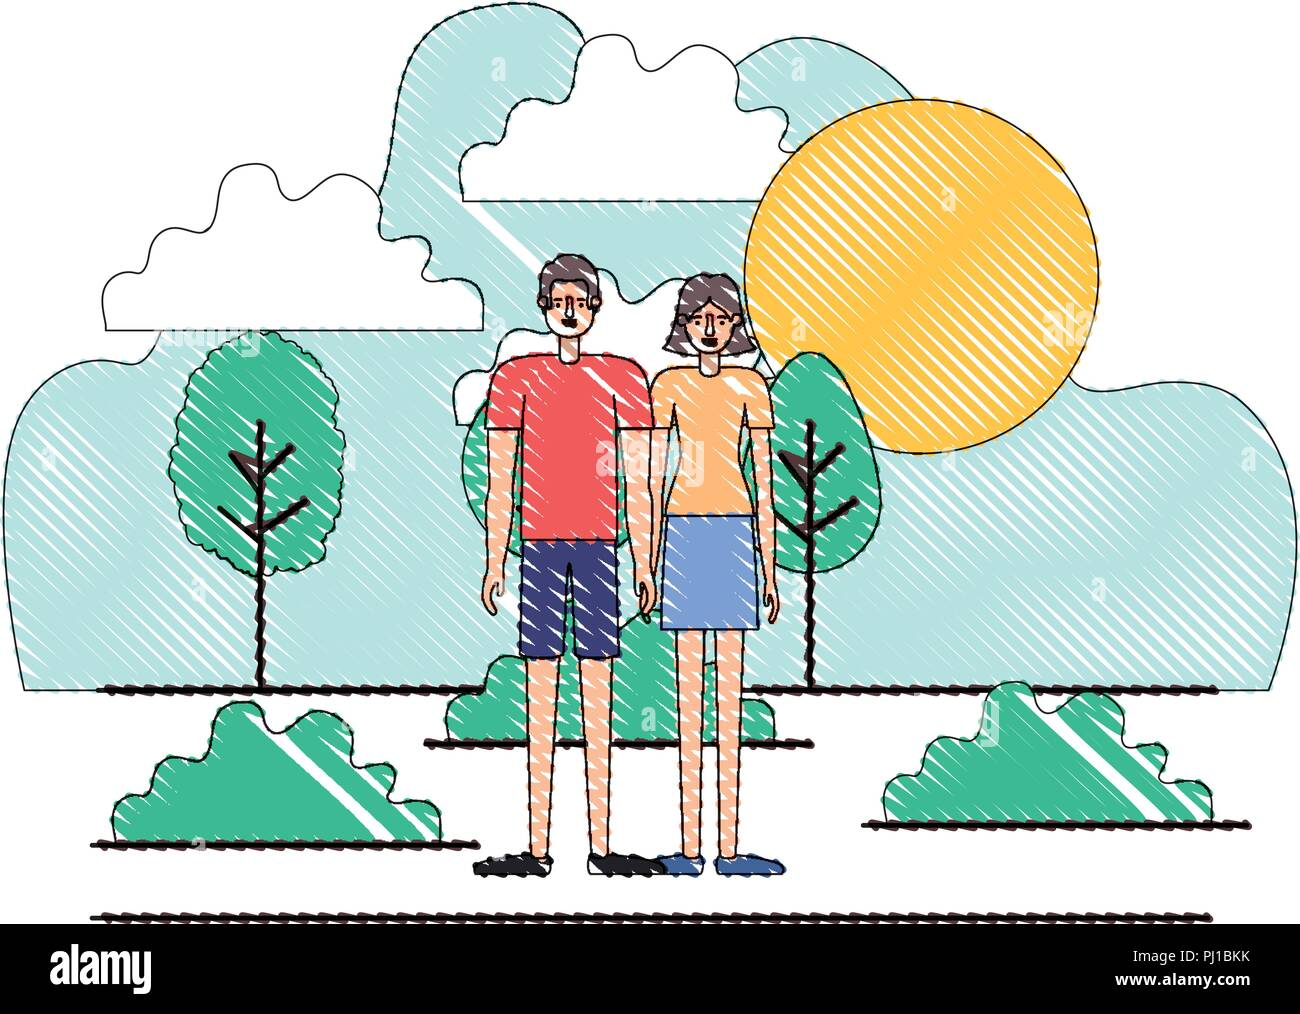 couple characters in day landscape - Stock Vector